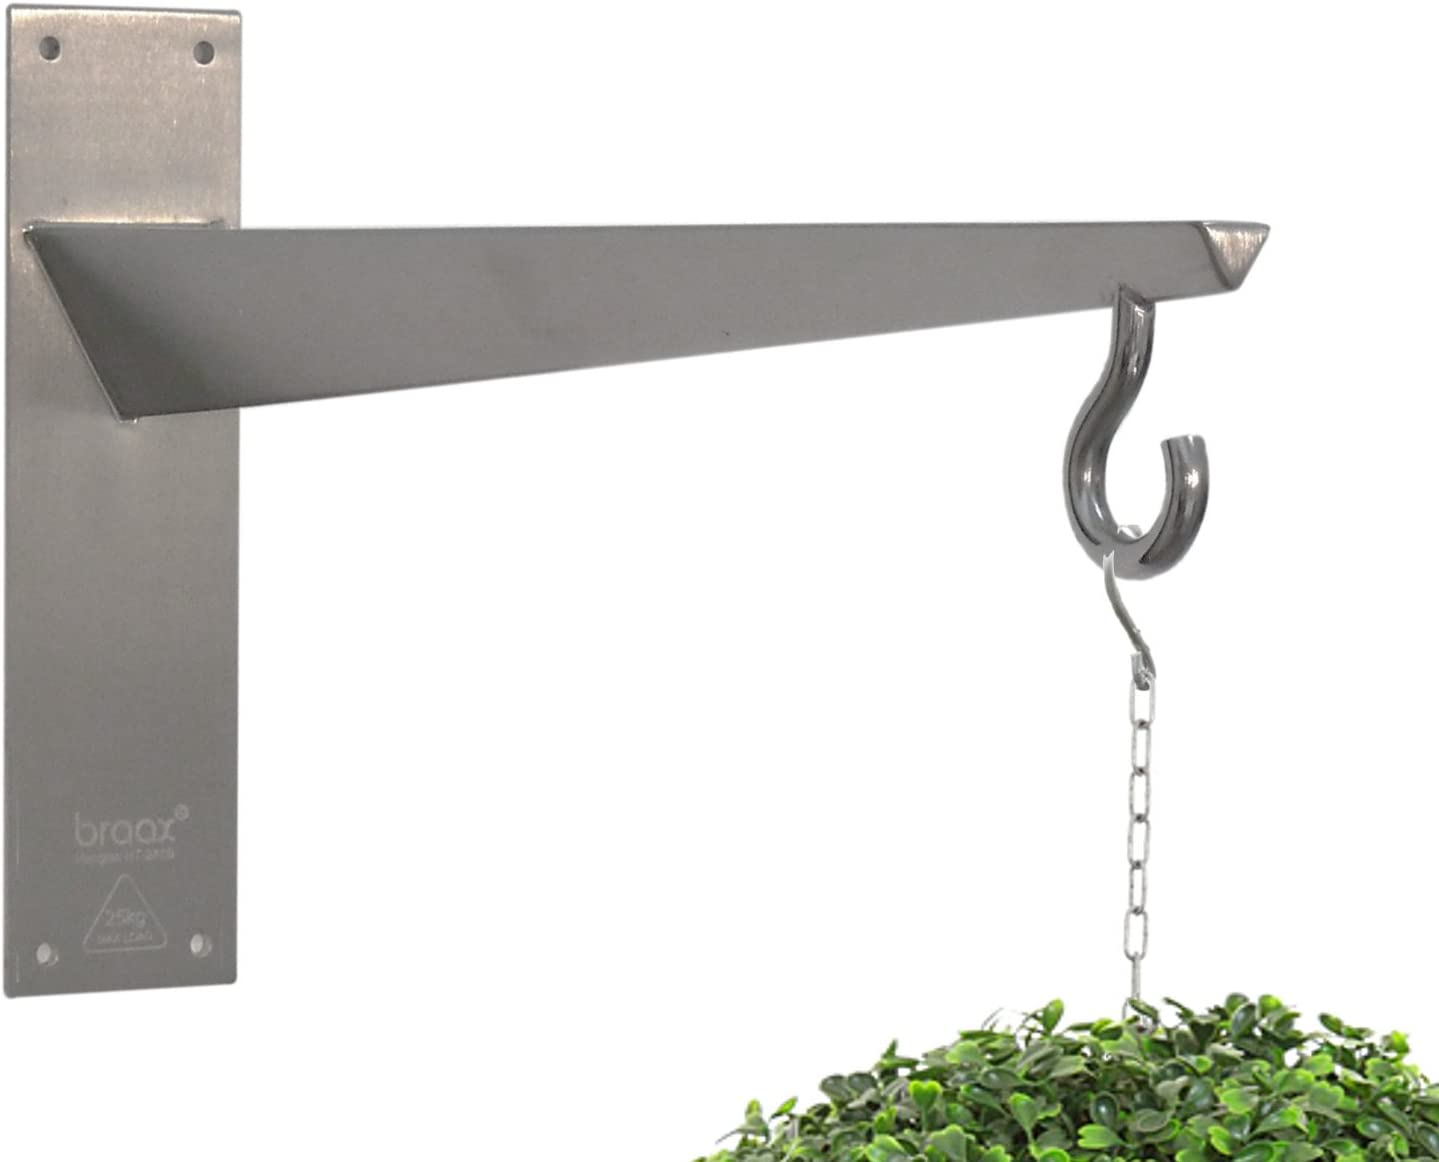 Hangtec Tetrahedron HT-2A09 - Stainless Steel Bracket for Hanging Baskets, Topiary Balls, Bird fe.